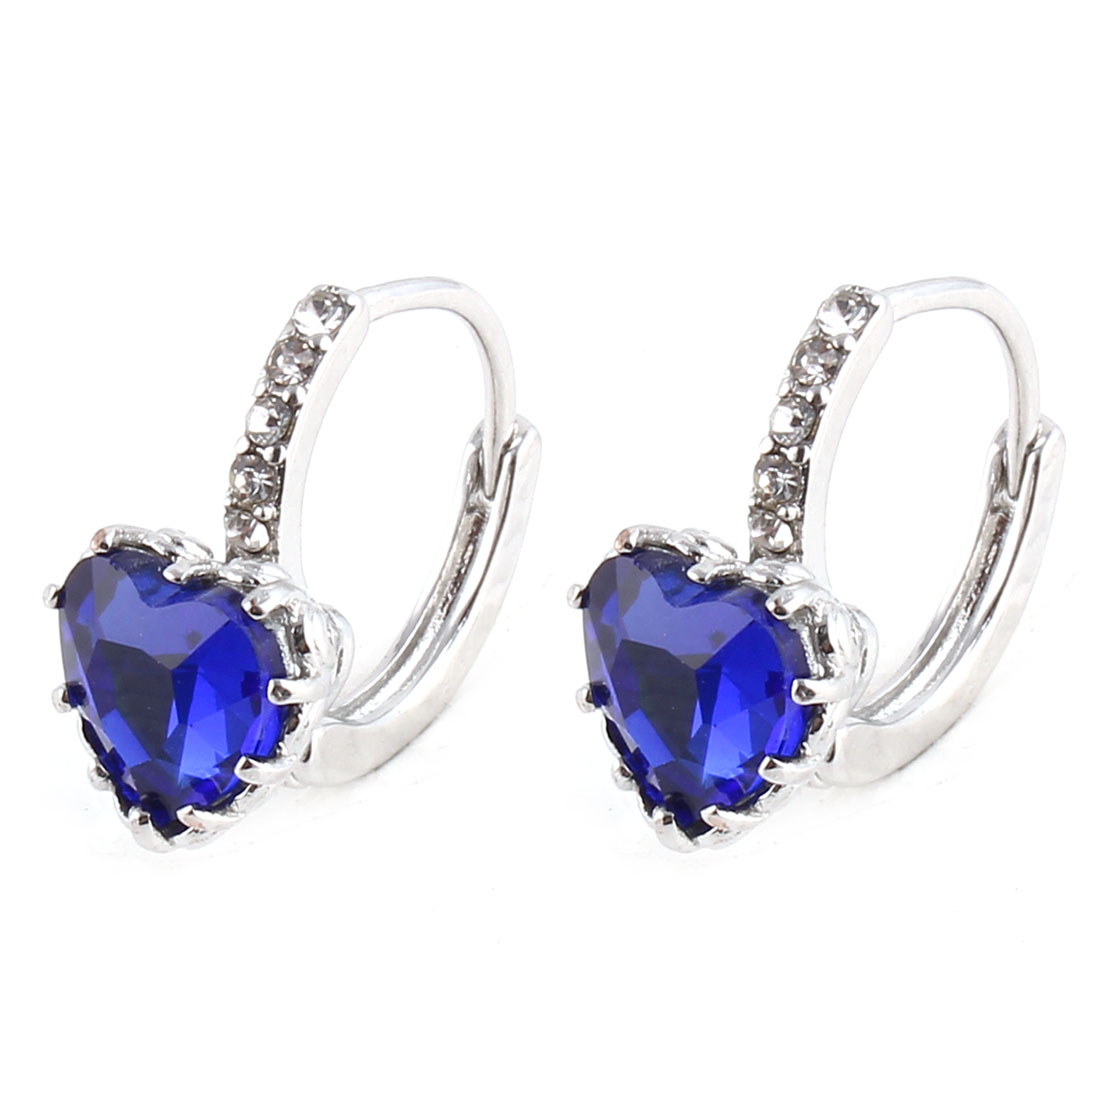 Women Metal Heart Shaped Faux Rhinestone Jewelry Decor Eardrop Hoop Earrings Dark Blue Pair